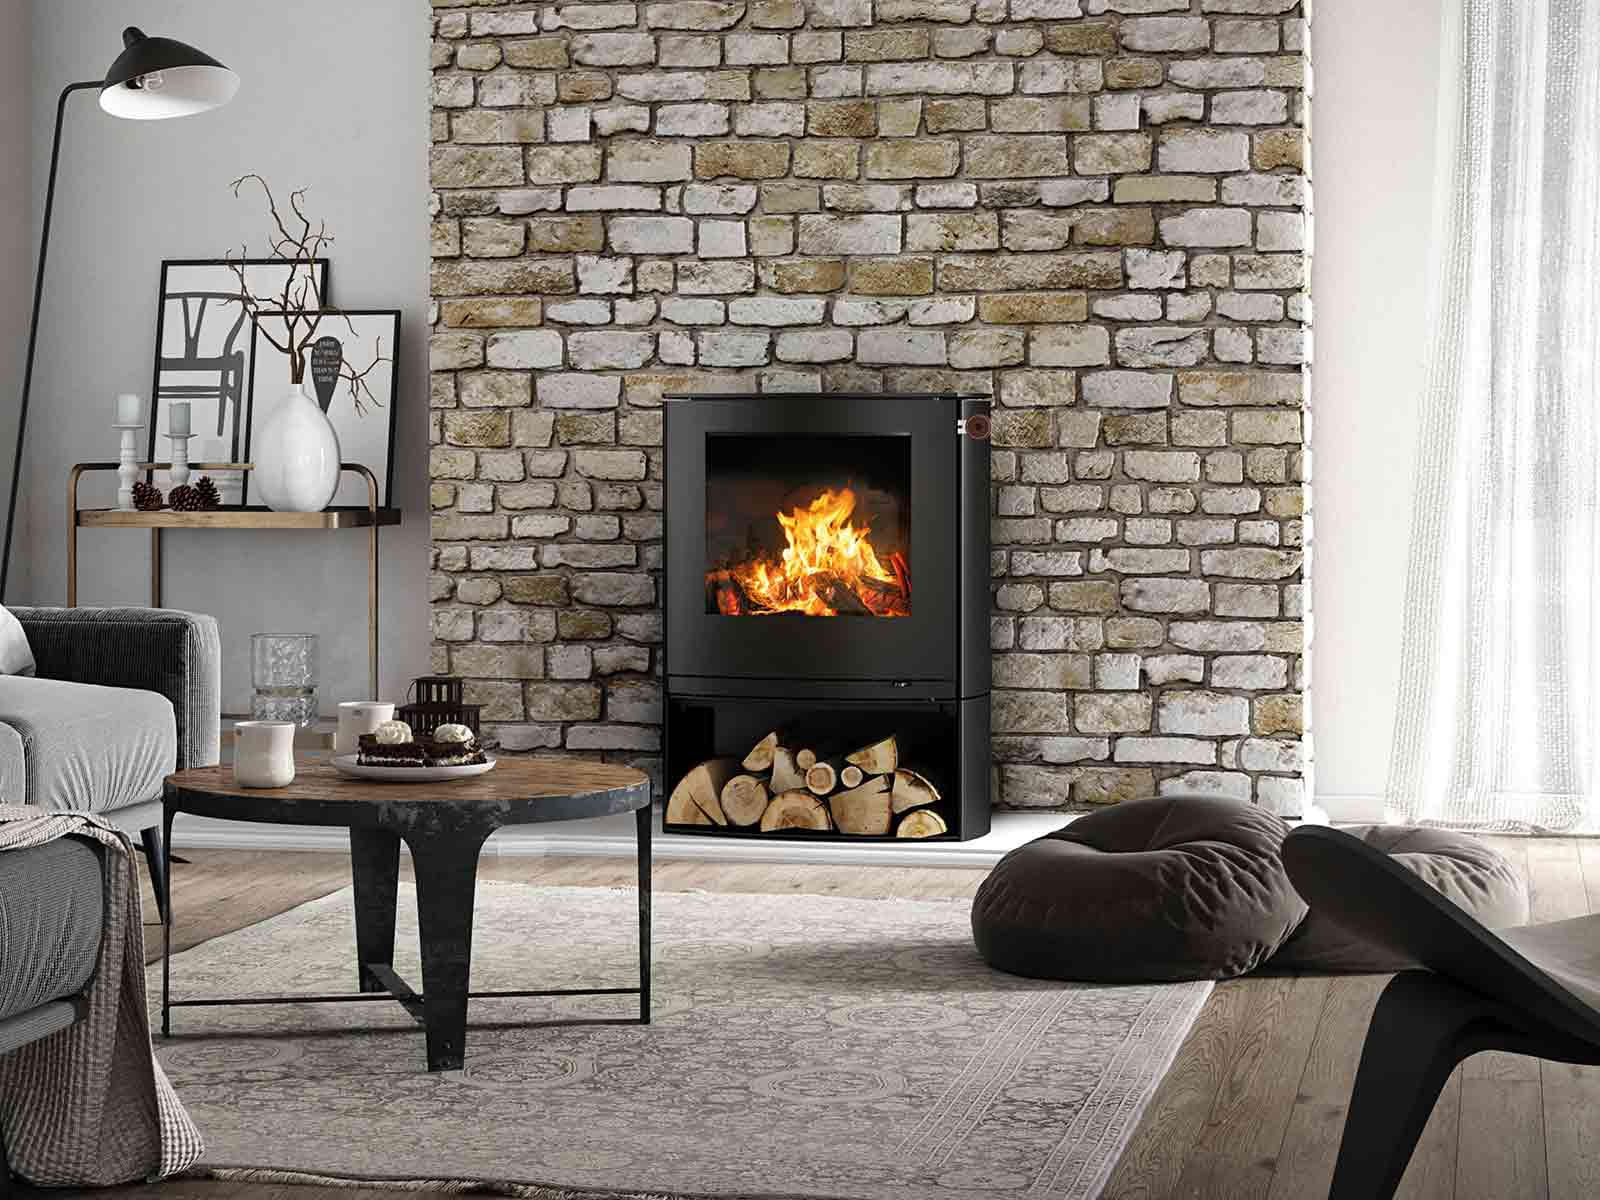 Kaminofen Red Dot Design Attika Blog Useful Information About The Stove And Fireplaces